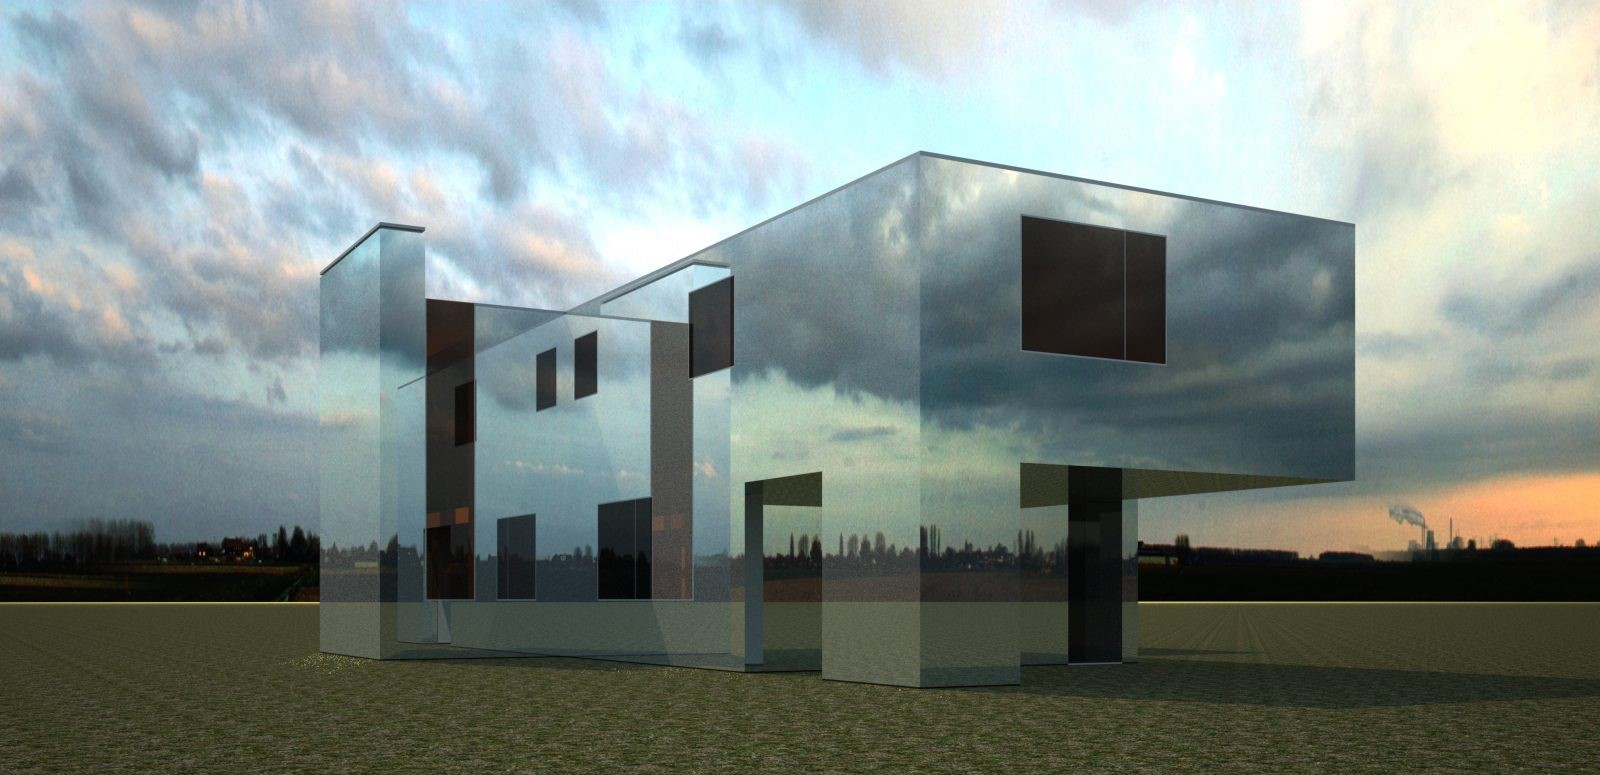 Mirror House by Pedro Joel Costa: The invisible building - Sheet3